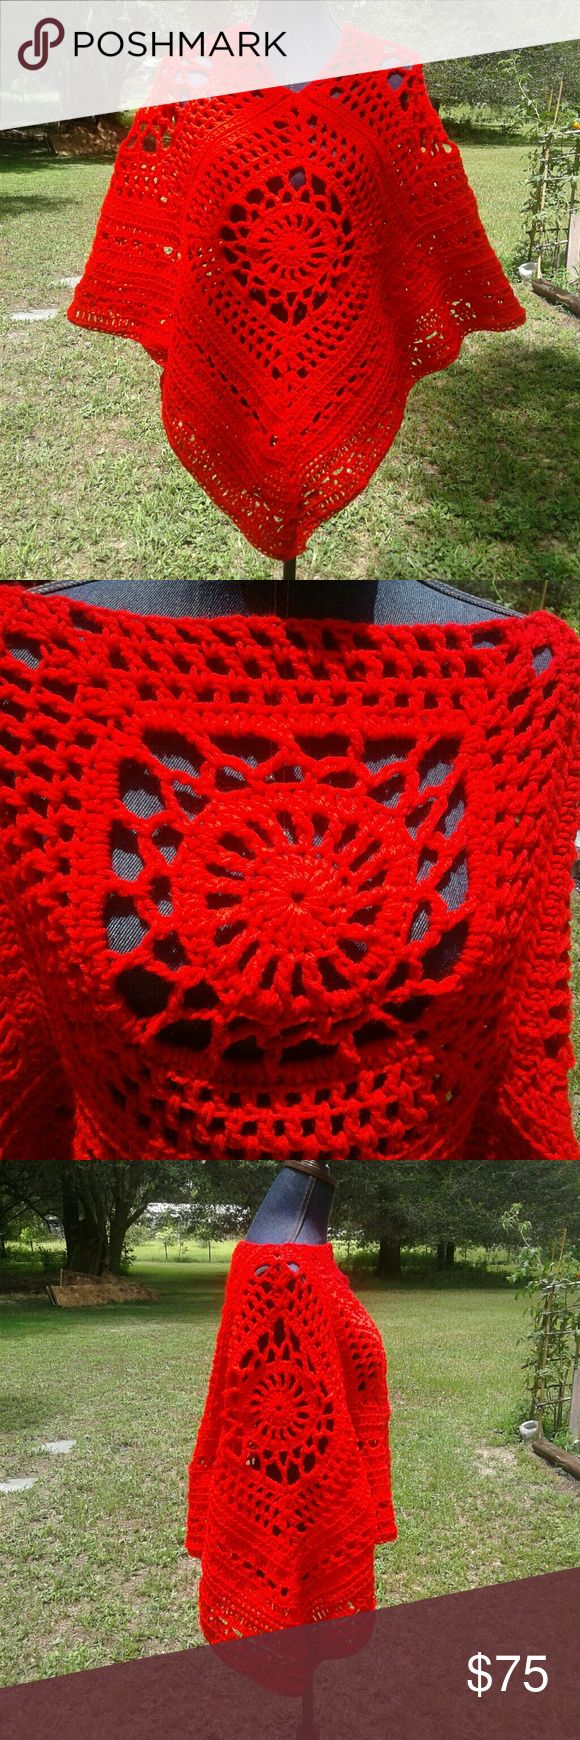 "Hand Crochet Vibrant Red Poncho Boho Festival Wow! This Poncho will surely catch your eye! Bright red hand crochet Poncho with acrylic yarn. Machine washable. Nice and stretchy. Fit small medium and large. Nice Lacy design so it's not super heavy. Neck Opening 12"", meadures 26"" from v neck to bottom point, 36"" across point to point. Wear two ways, triangle or short square with long sides. Price firm unless bundled. Optional  fringe can be added upon request  (additional charge). Lobax…"